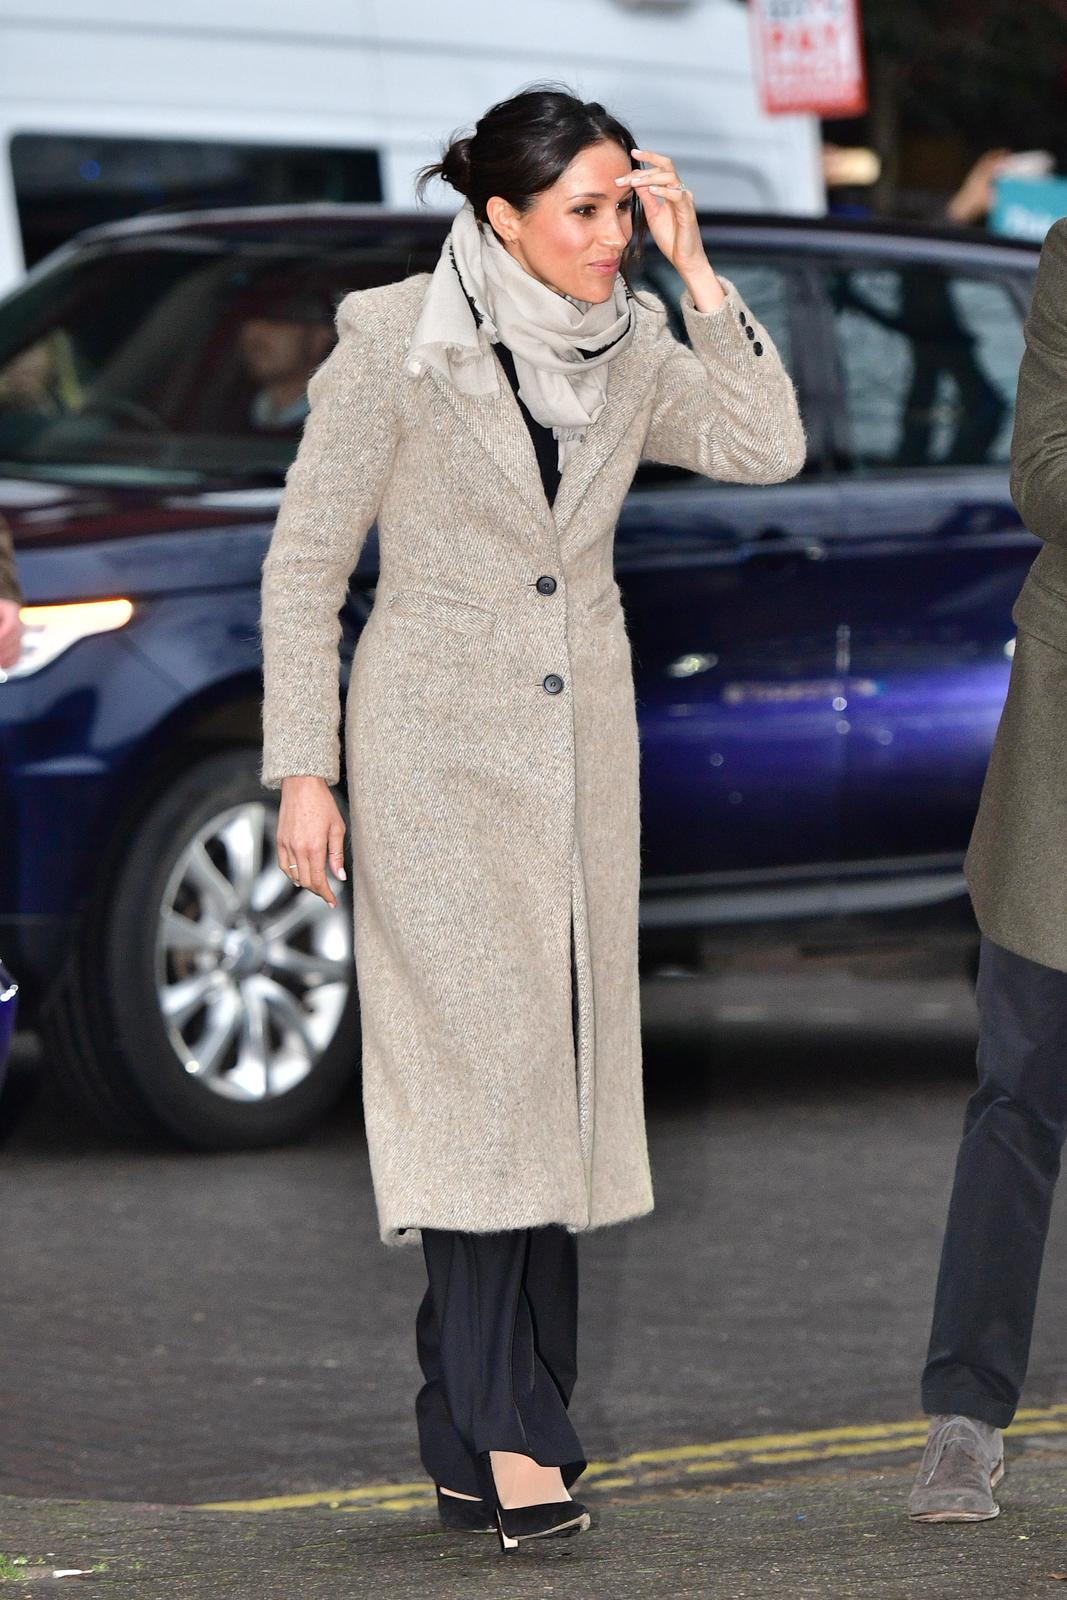 Meghan Markle arrives to visit radio station Reprezent FM, with her fiancee Britain's Prince Harry, in Brixton, London